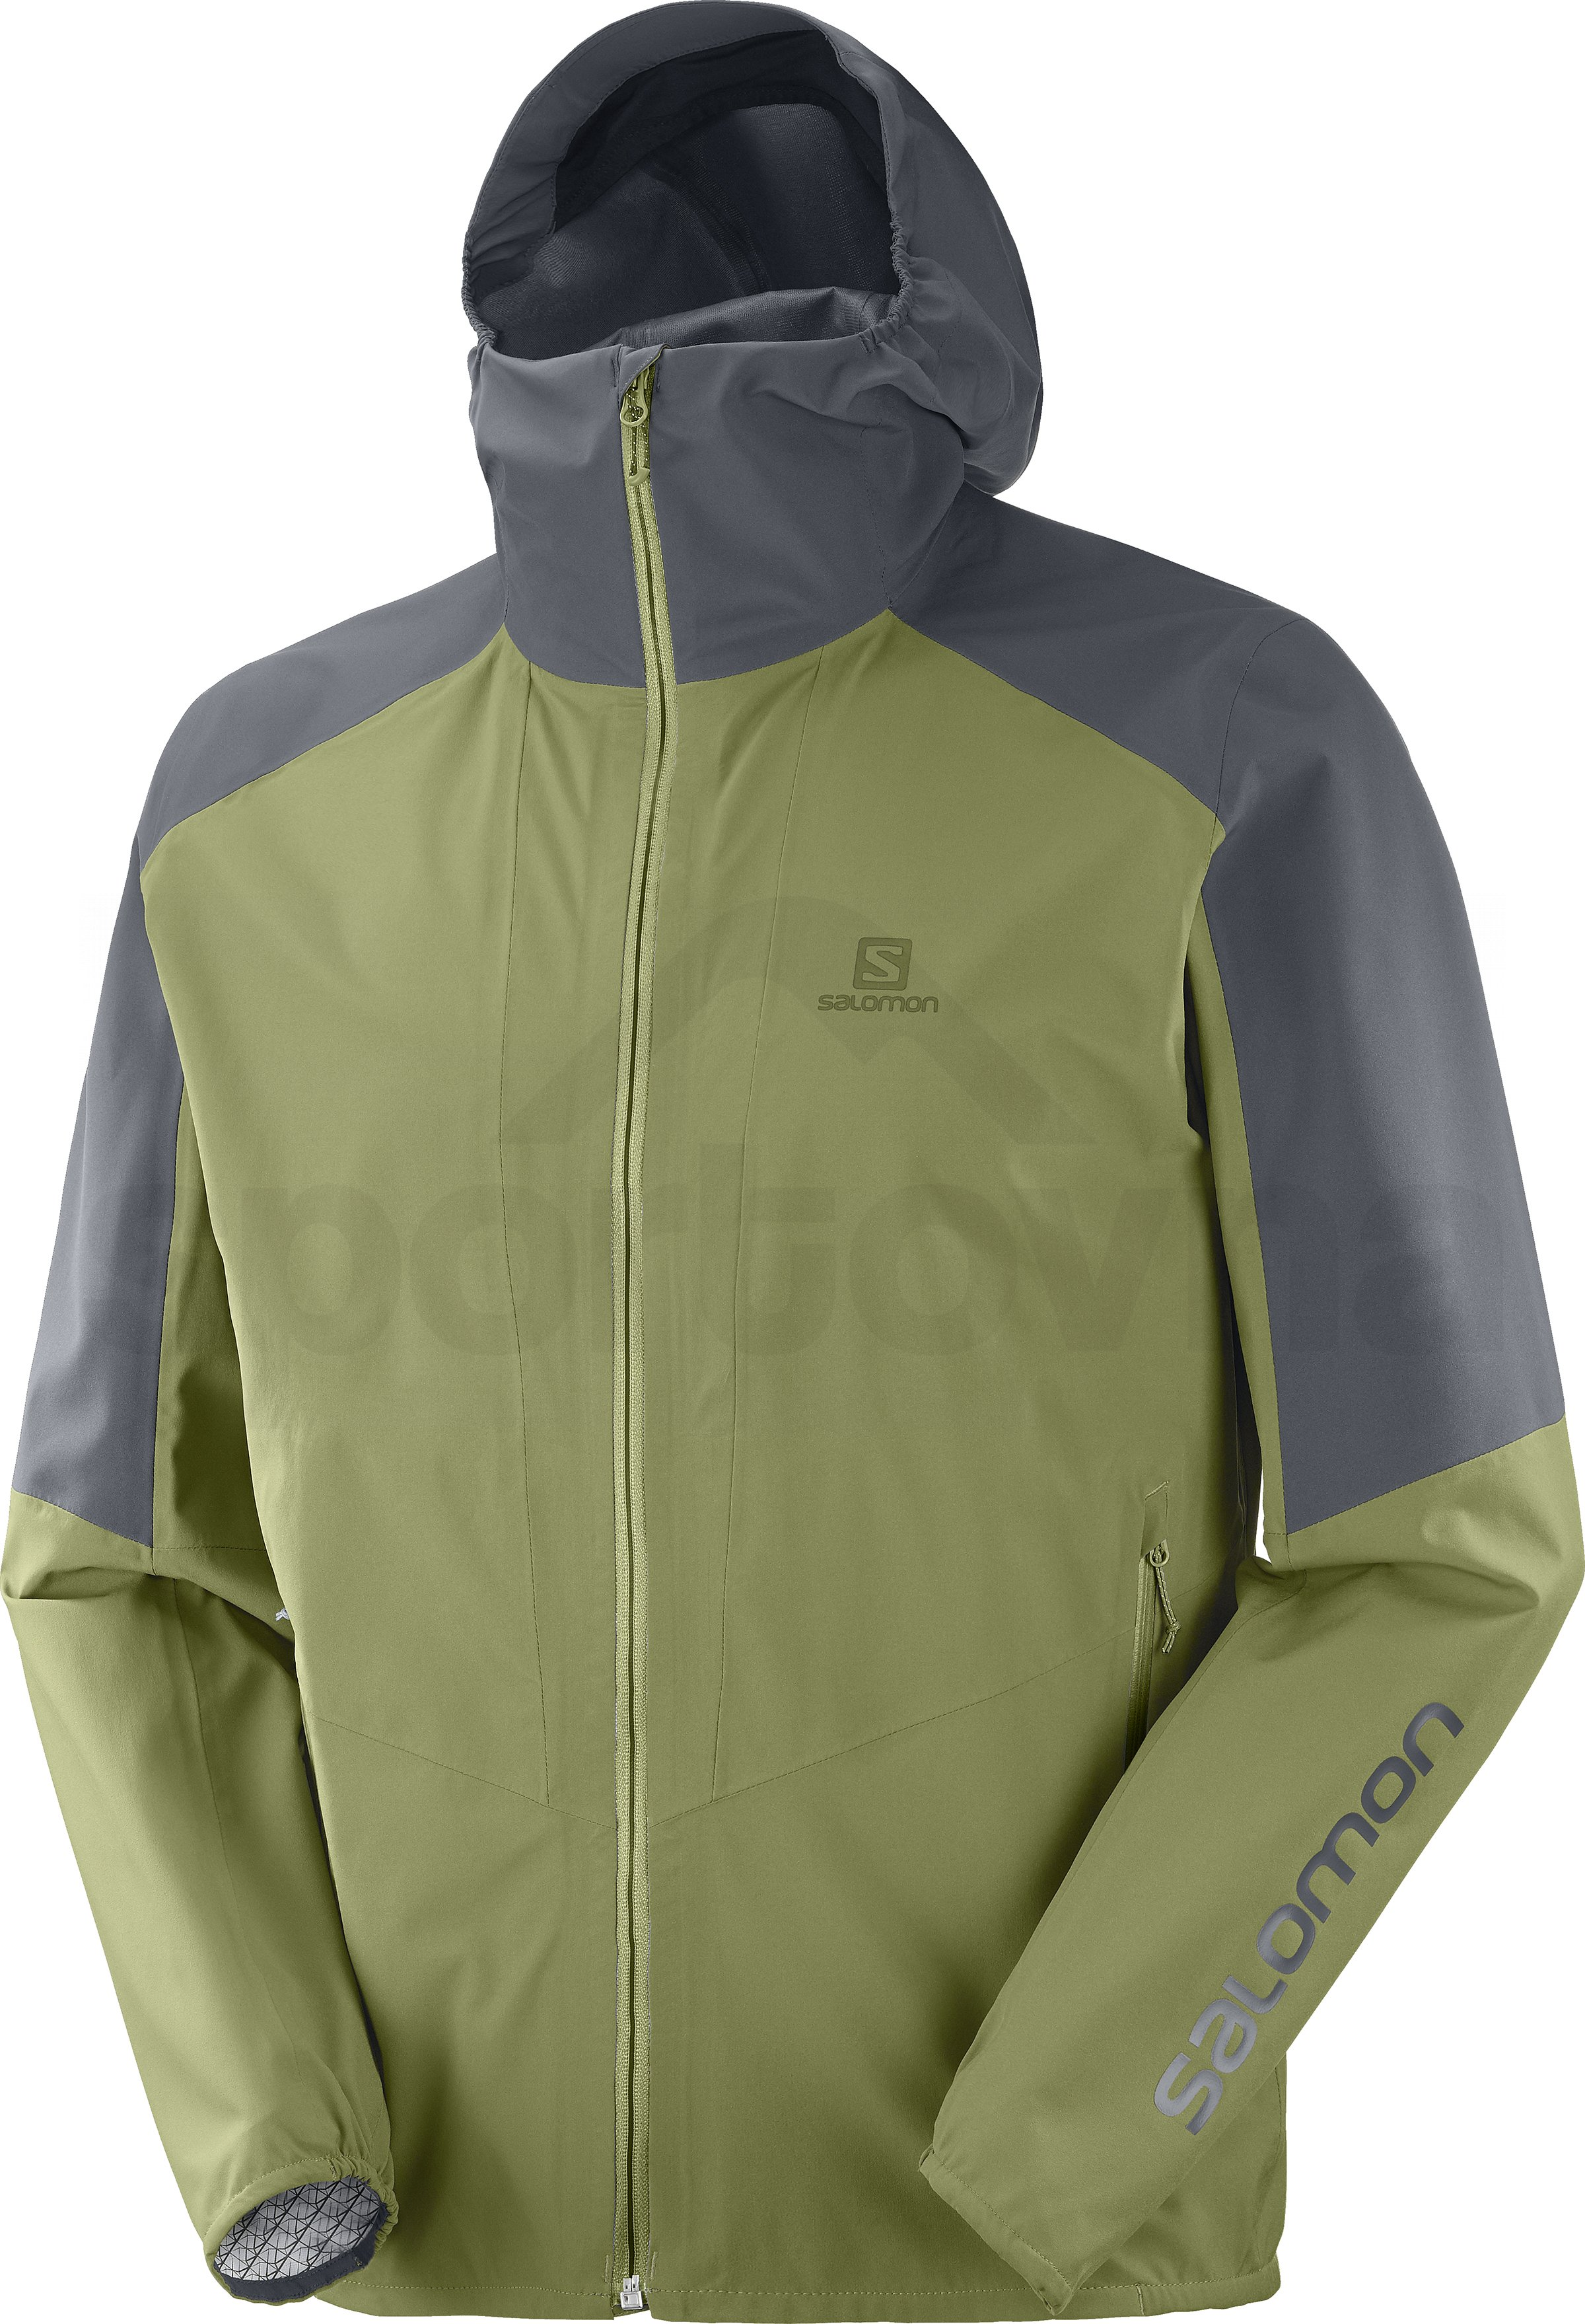 LC1508900_0_GHO_outlinejkt_martiniolivebony_outdoor_m